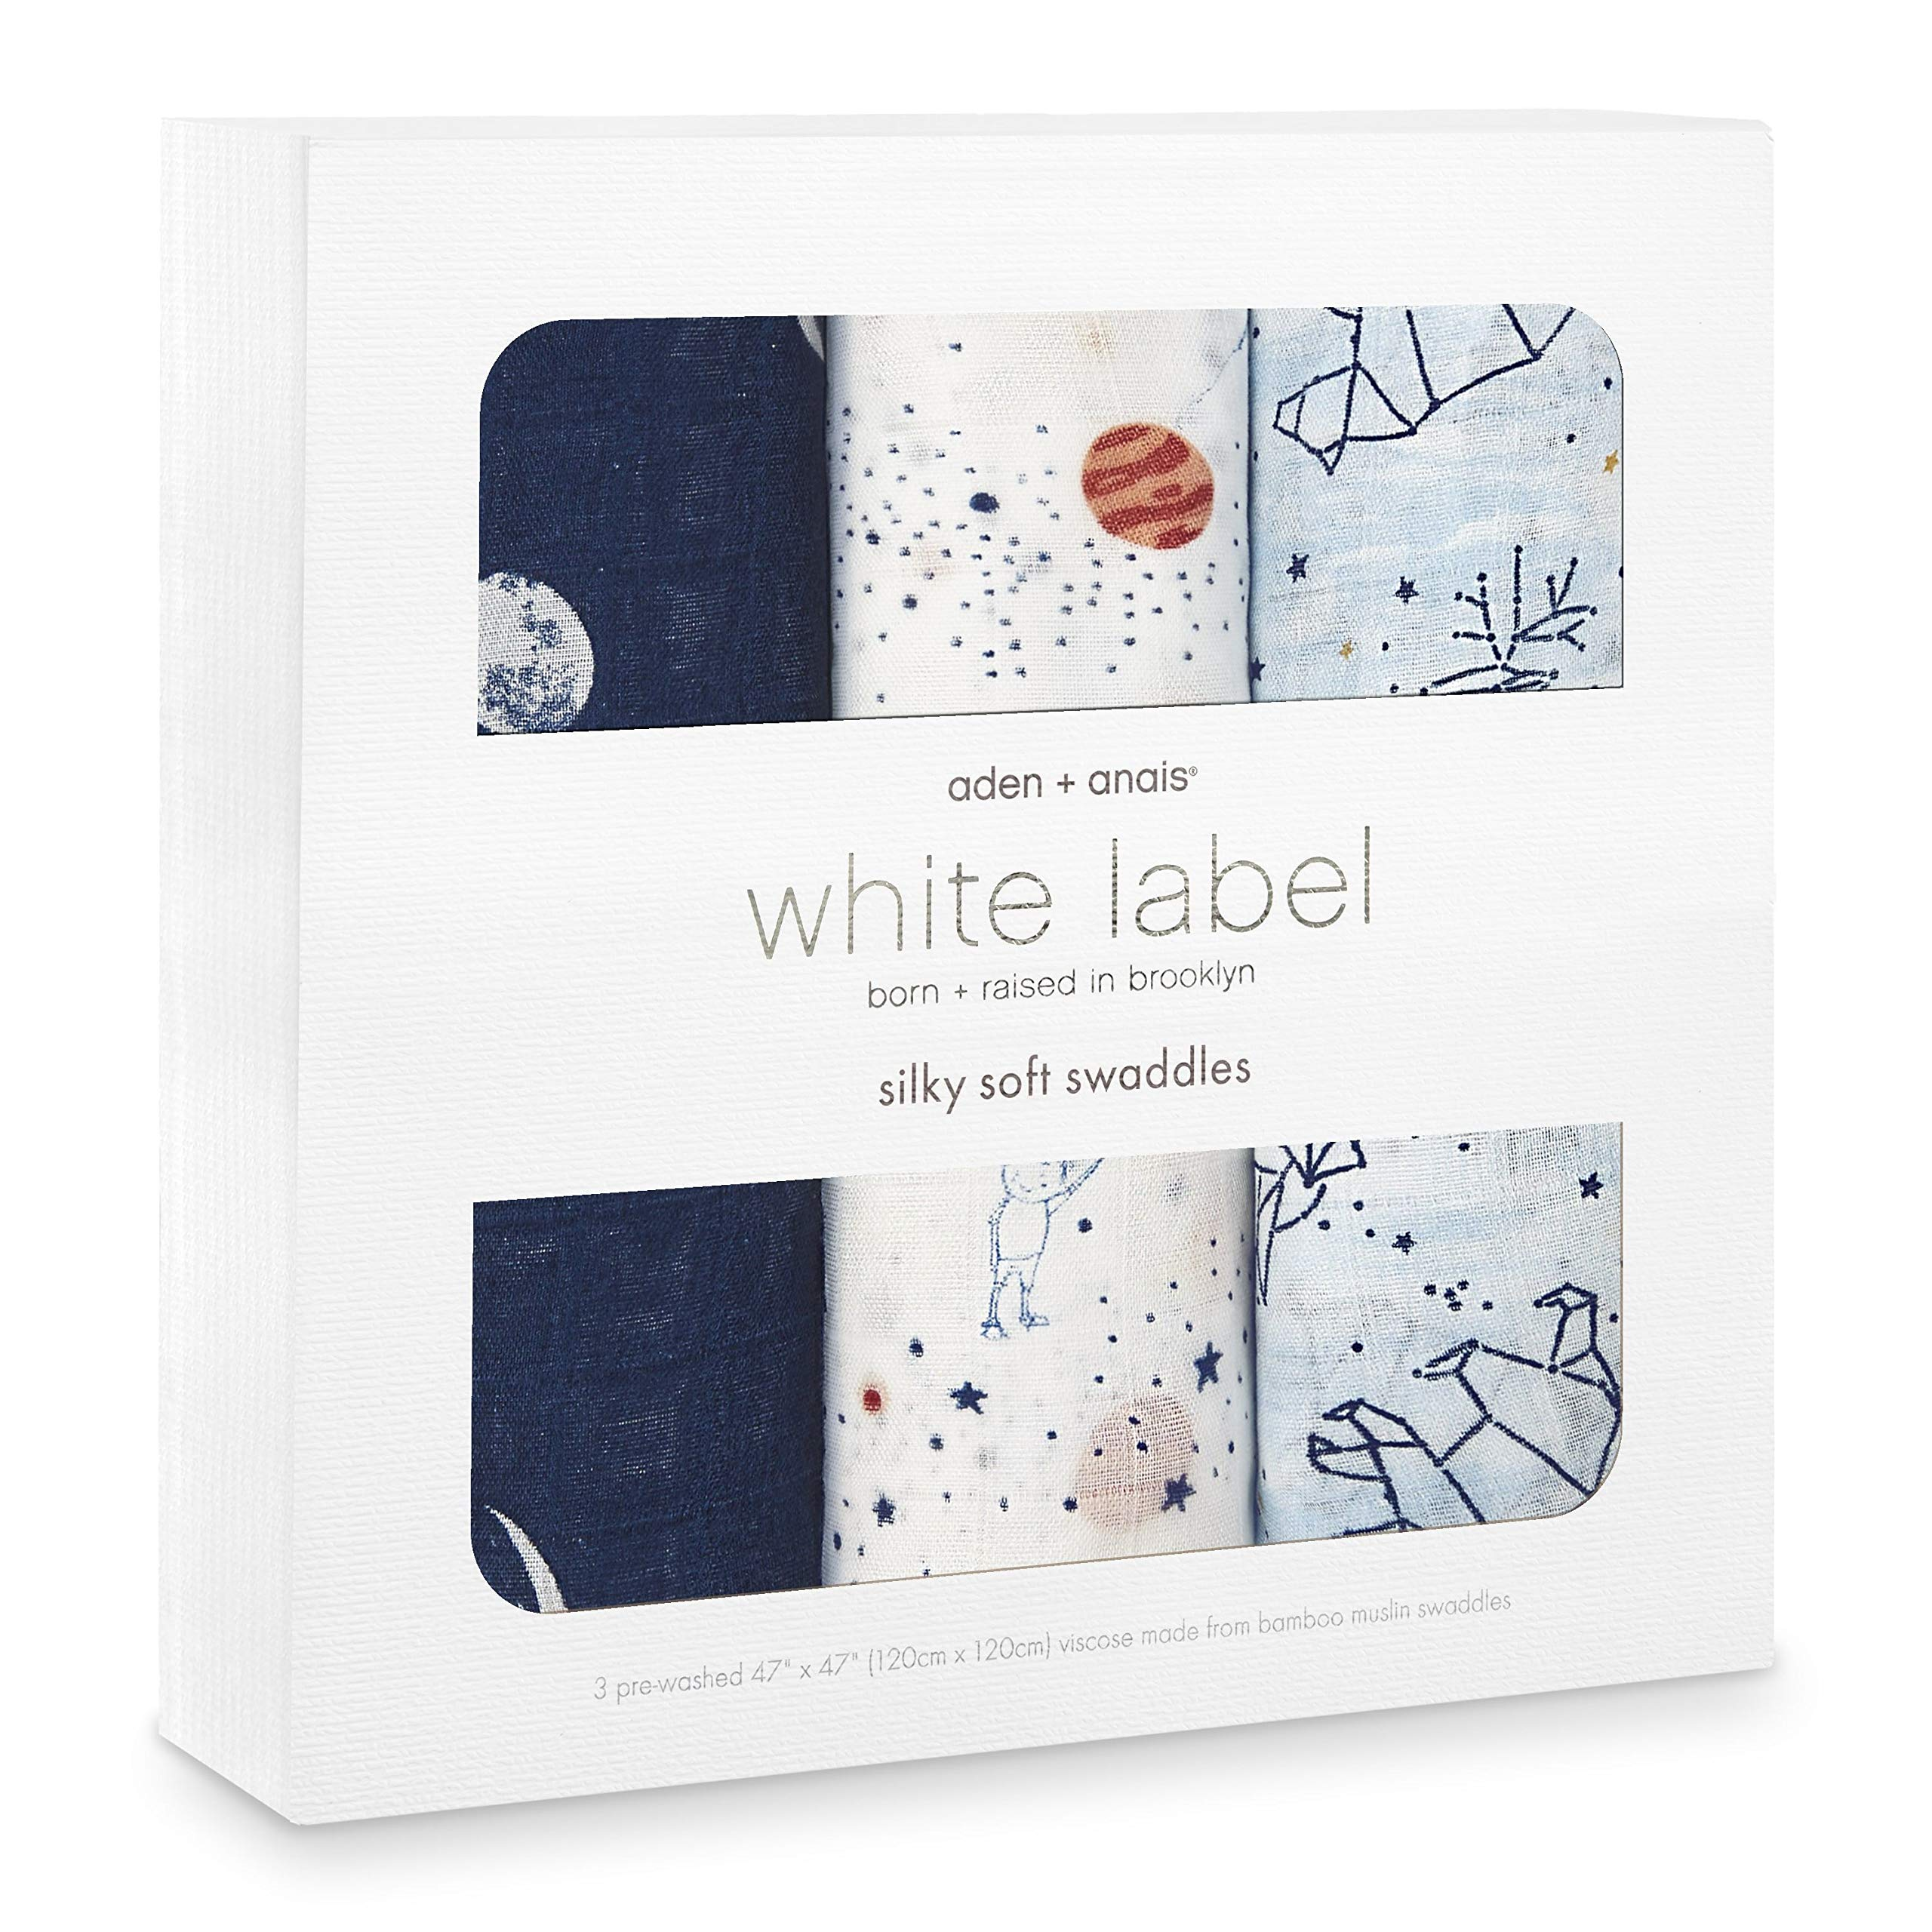 aden + anais Silky Soft Swaddle Baby Blanket, White Label, 3-Pack, Stargaze by aden + anais